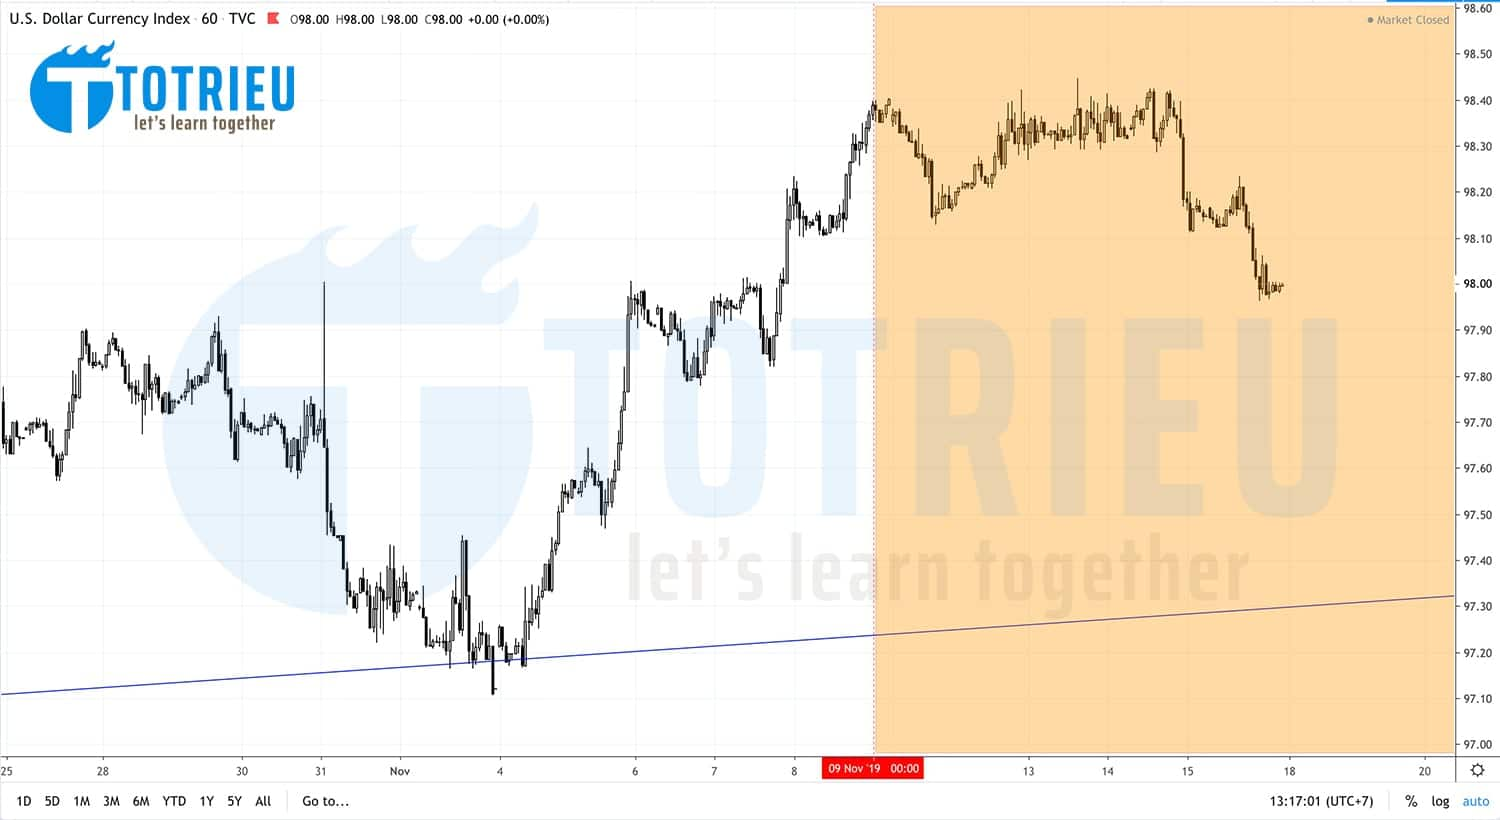 DXY - US Dollar Index Recap tuần 46/2019